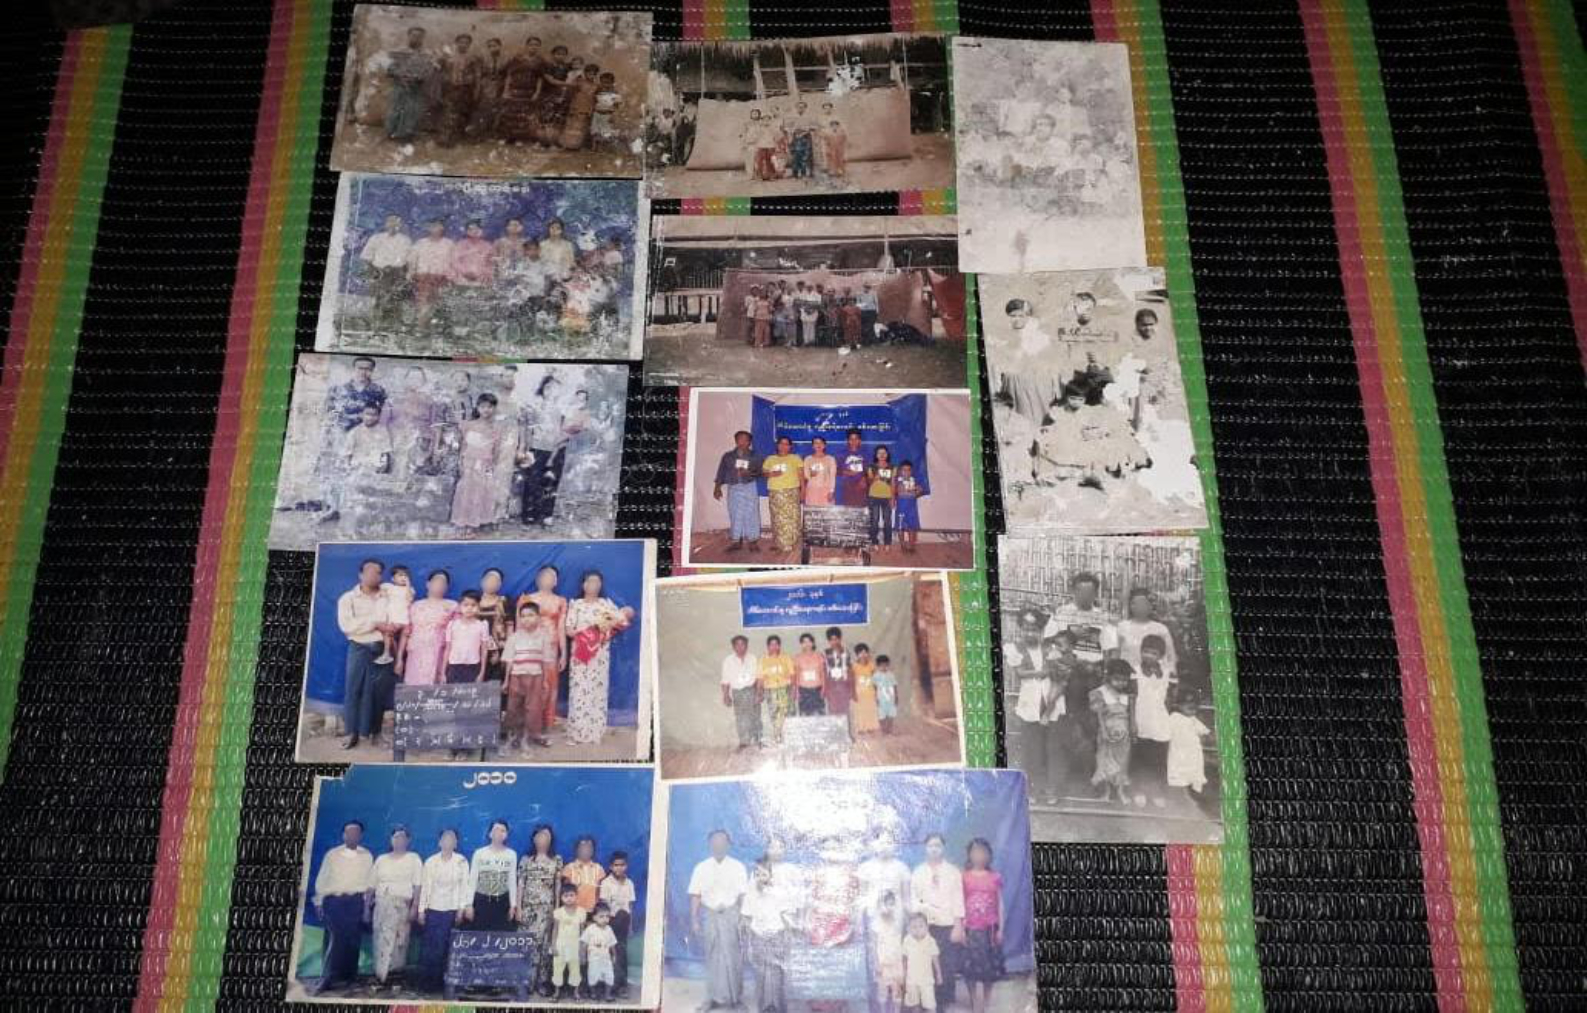 Photo 1 - A family's collection of SweTinSit photos spanning several years from Buthidaung Township